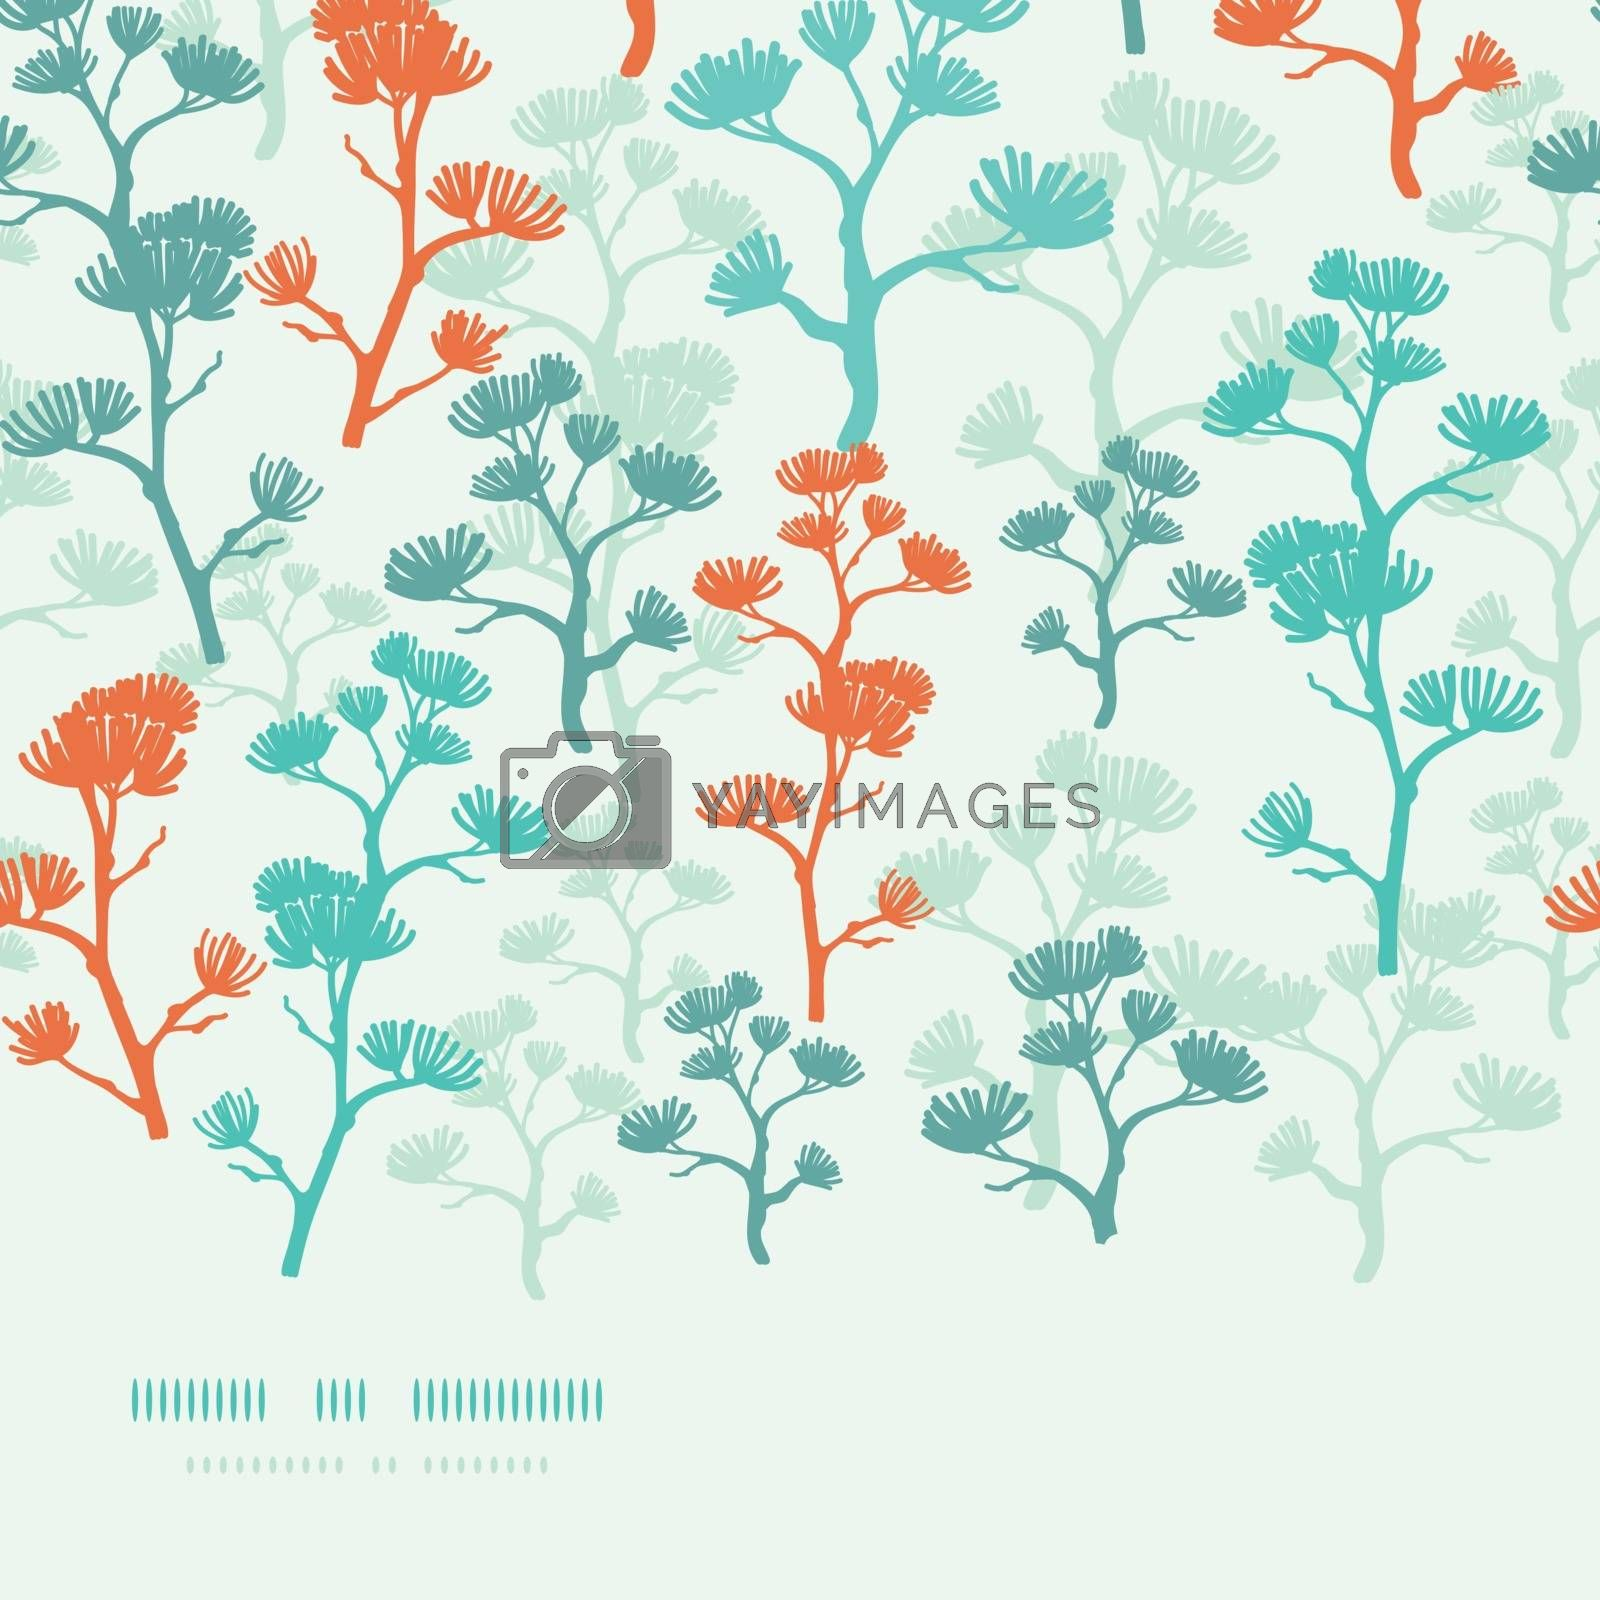 Vector abstract oriental trees frame horizontal seamless pattern background with hand drawn elements.